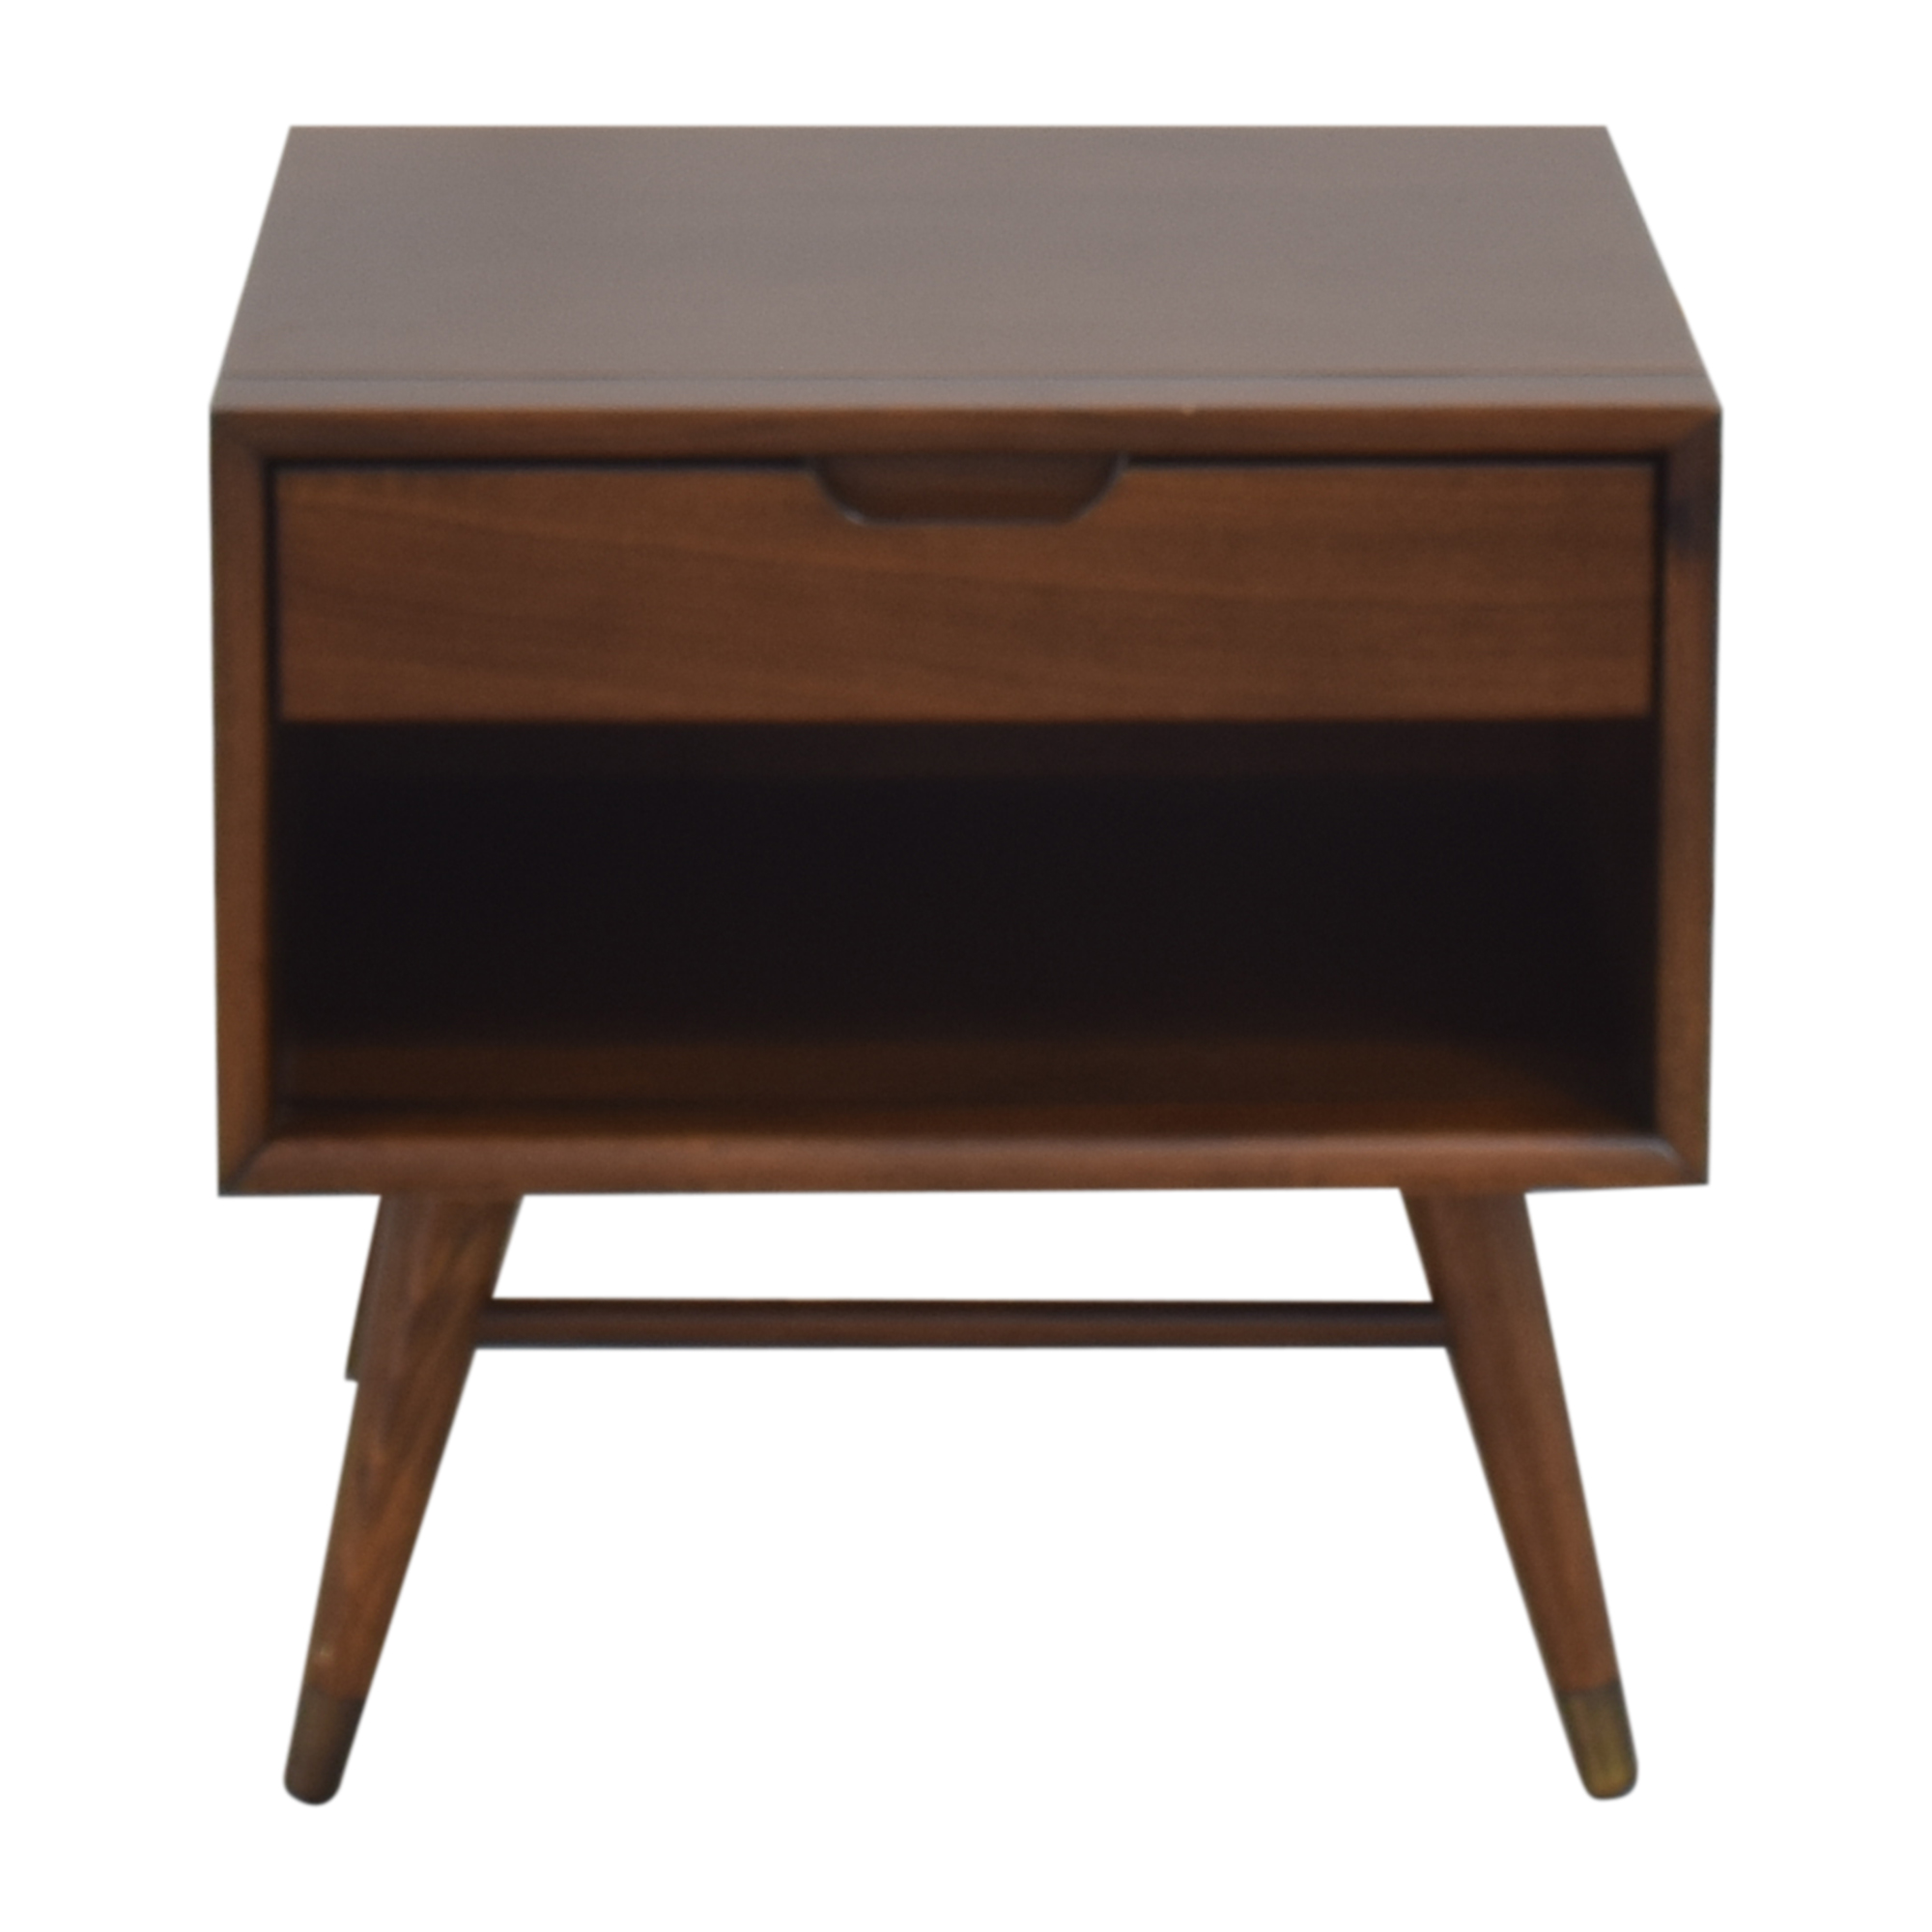 shop Pier 1 Pier 1 Bedside Table with Drawer online